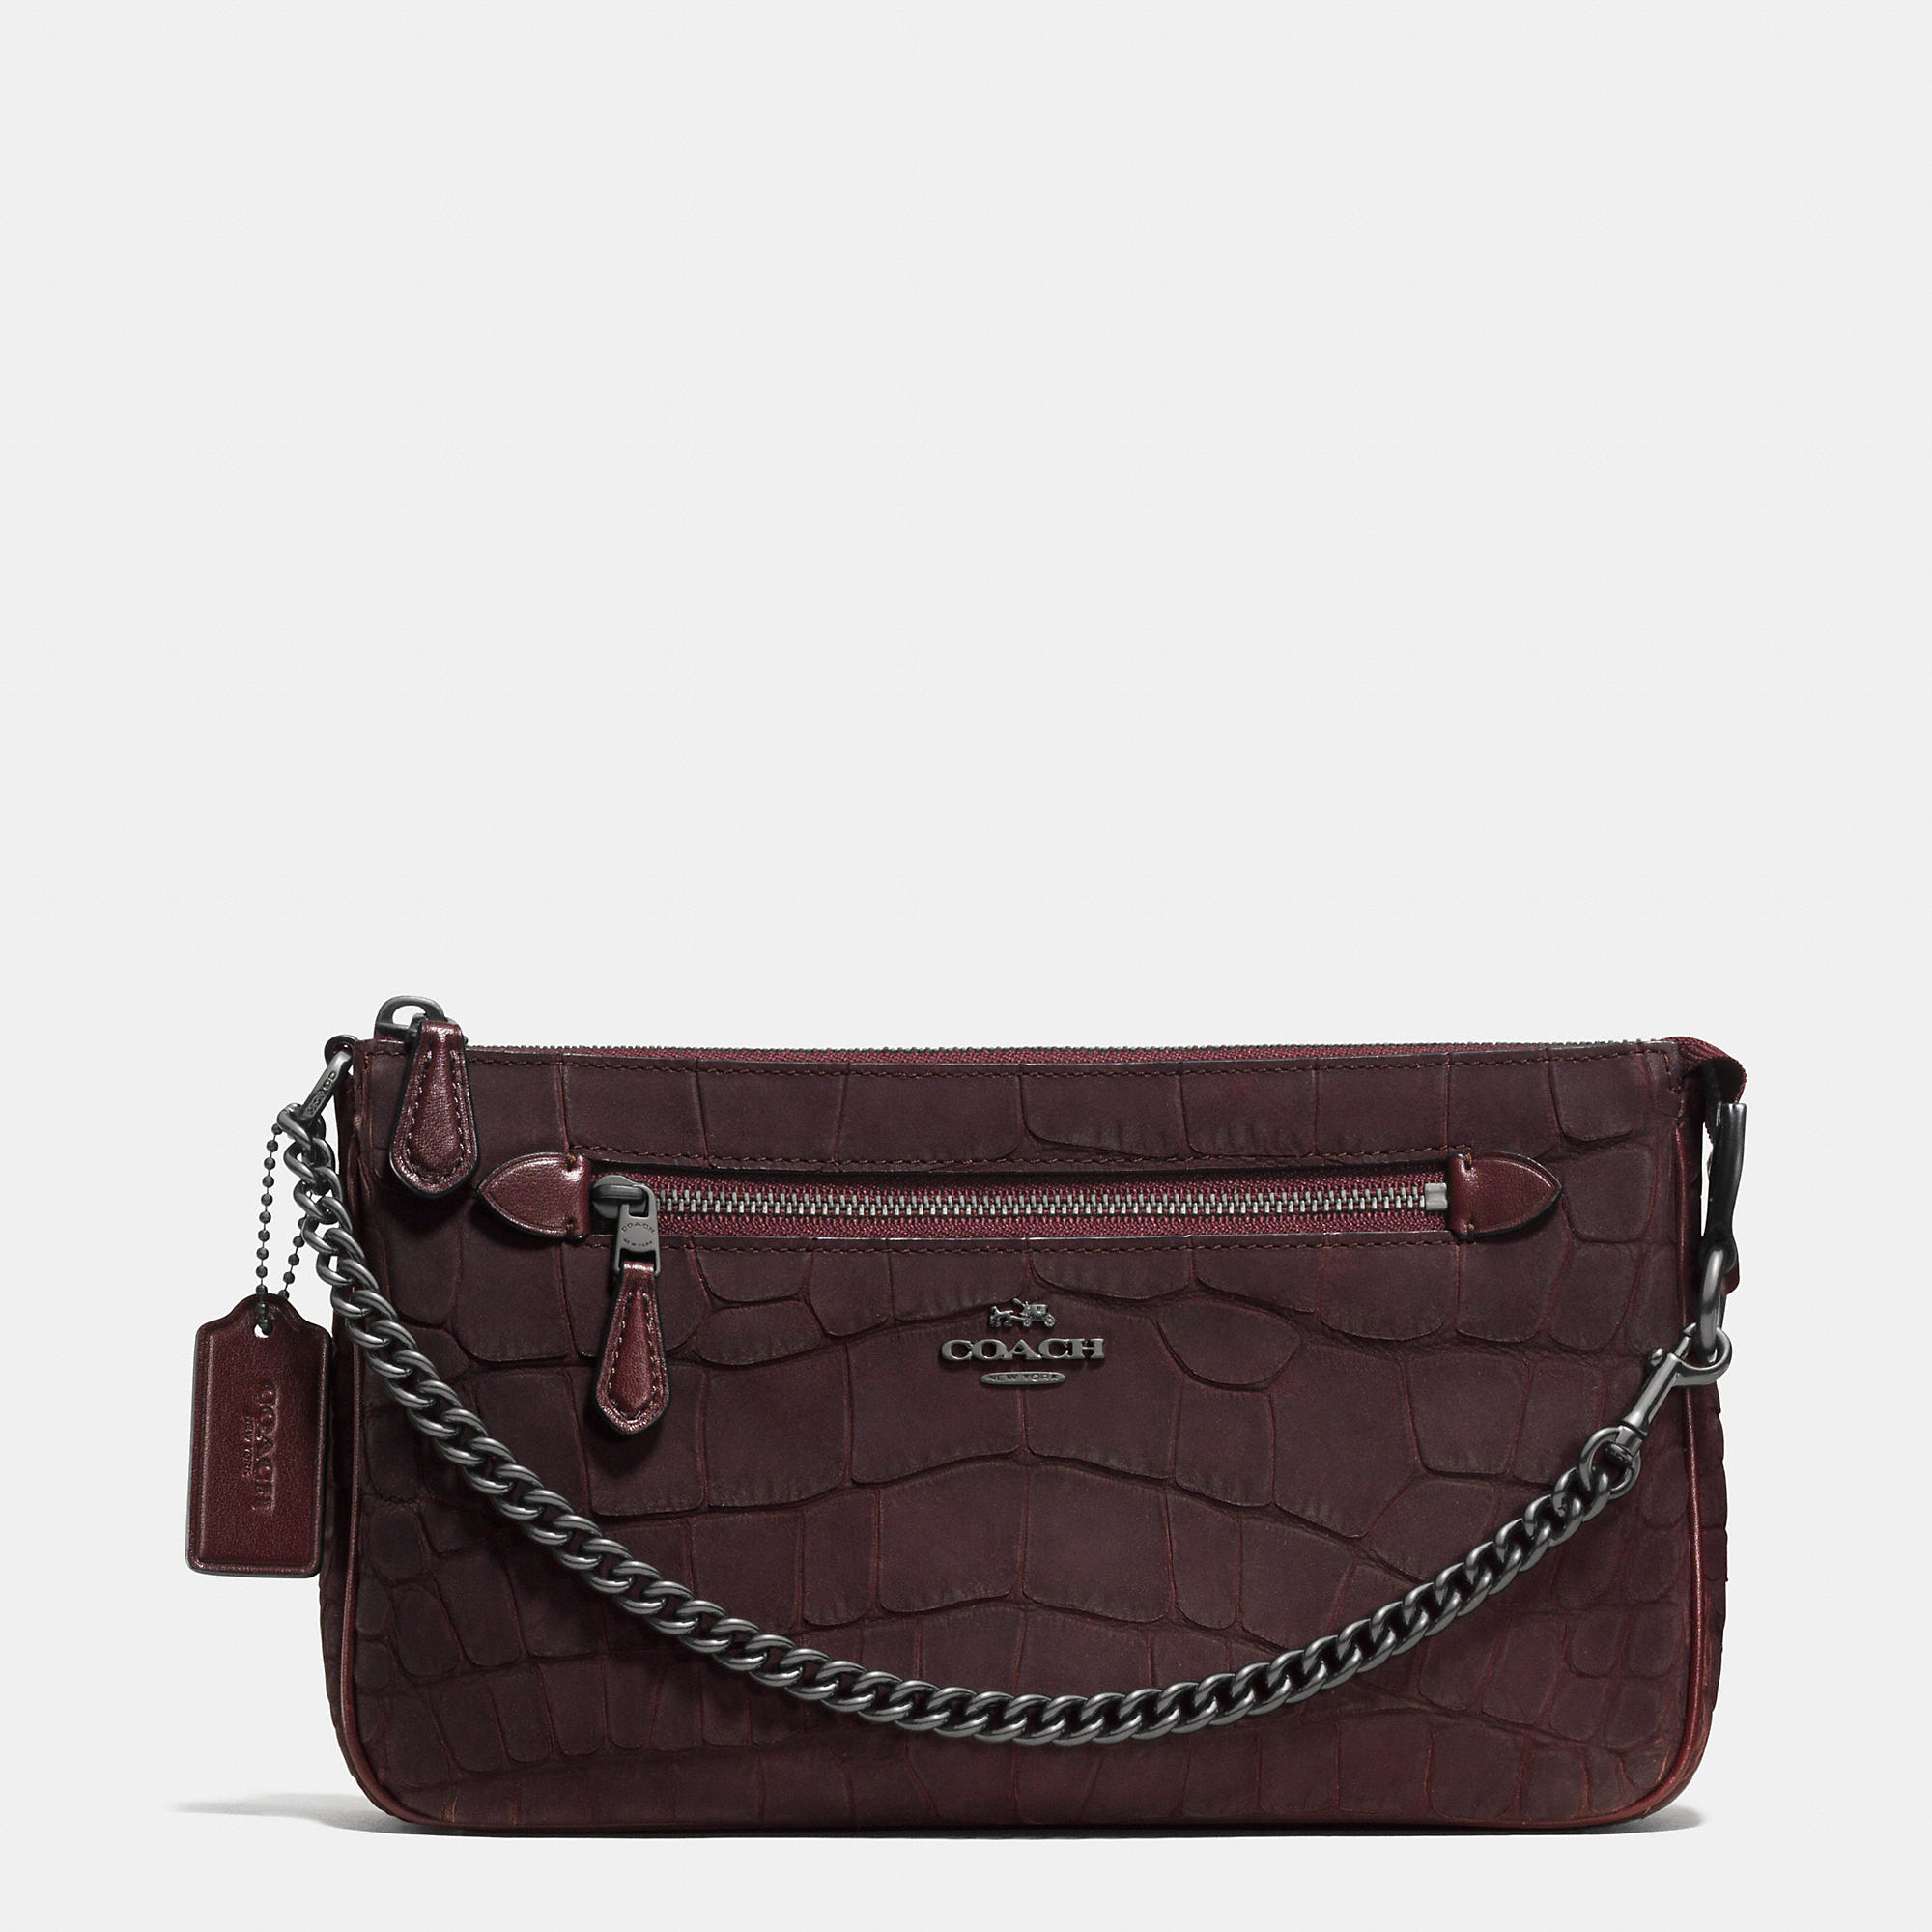 Lyst Coach Nolita Wristlet 24 In Croc Embossed Nubuck In